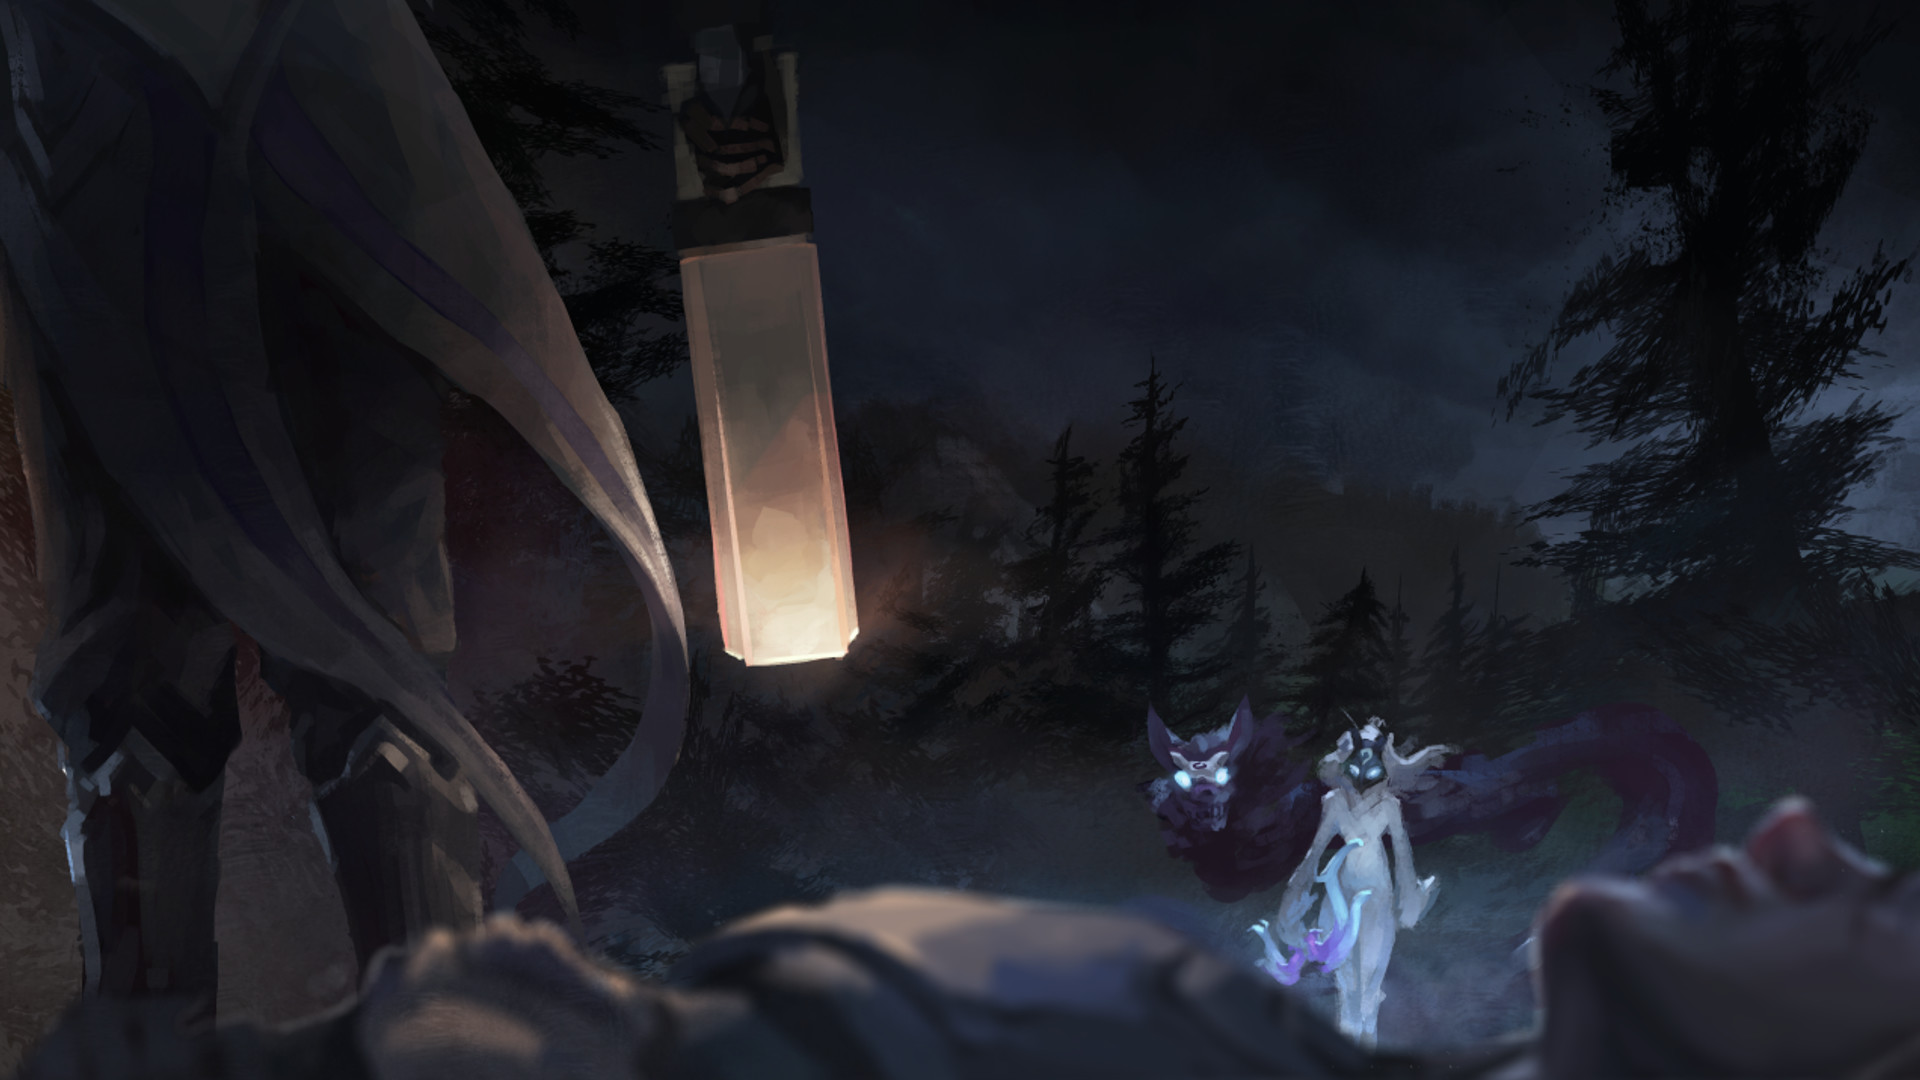 League Of Legends, Kindred, Kindred (League Of Legends), Lamb, Wolf